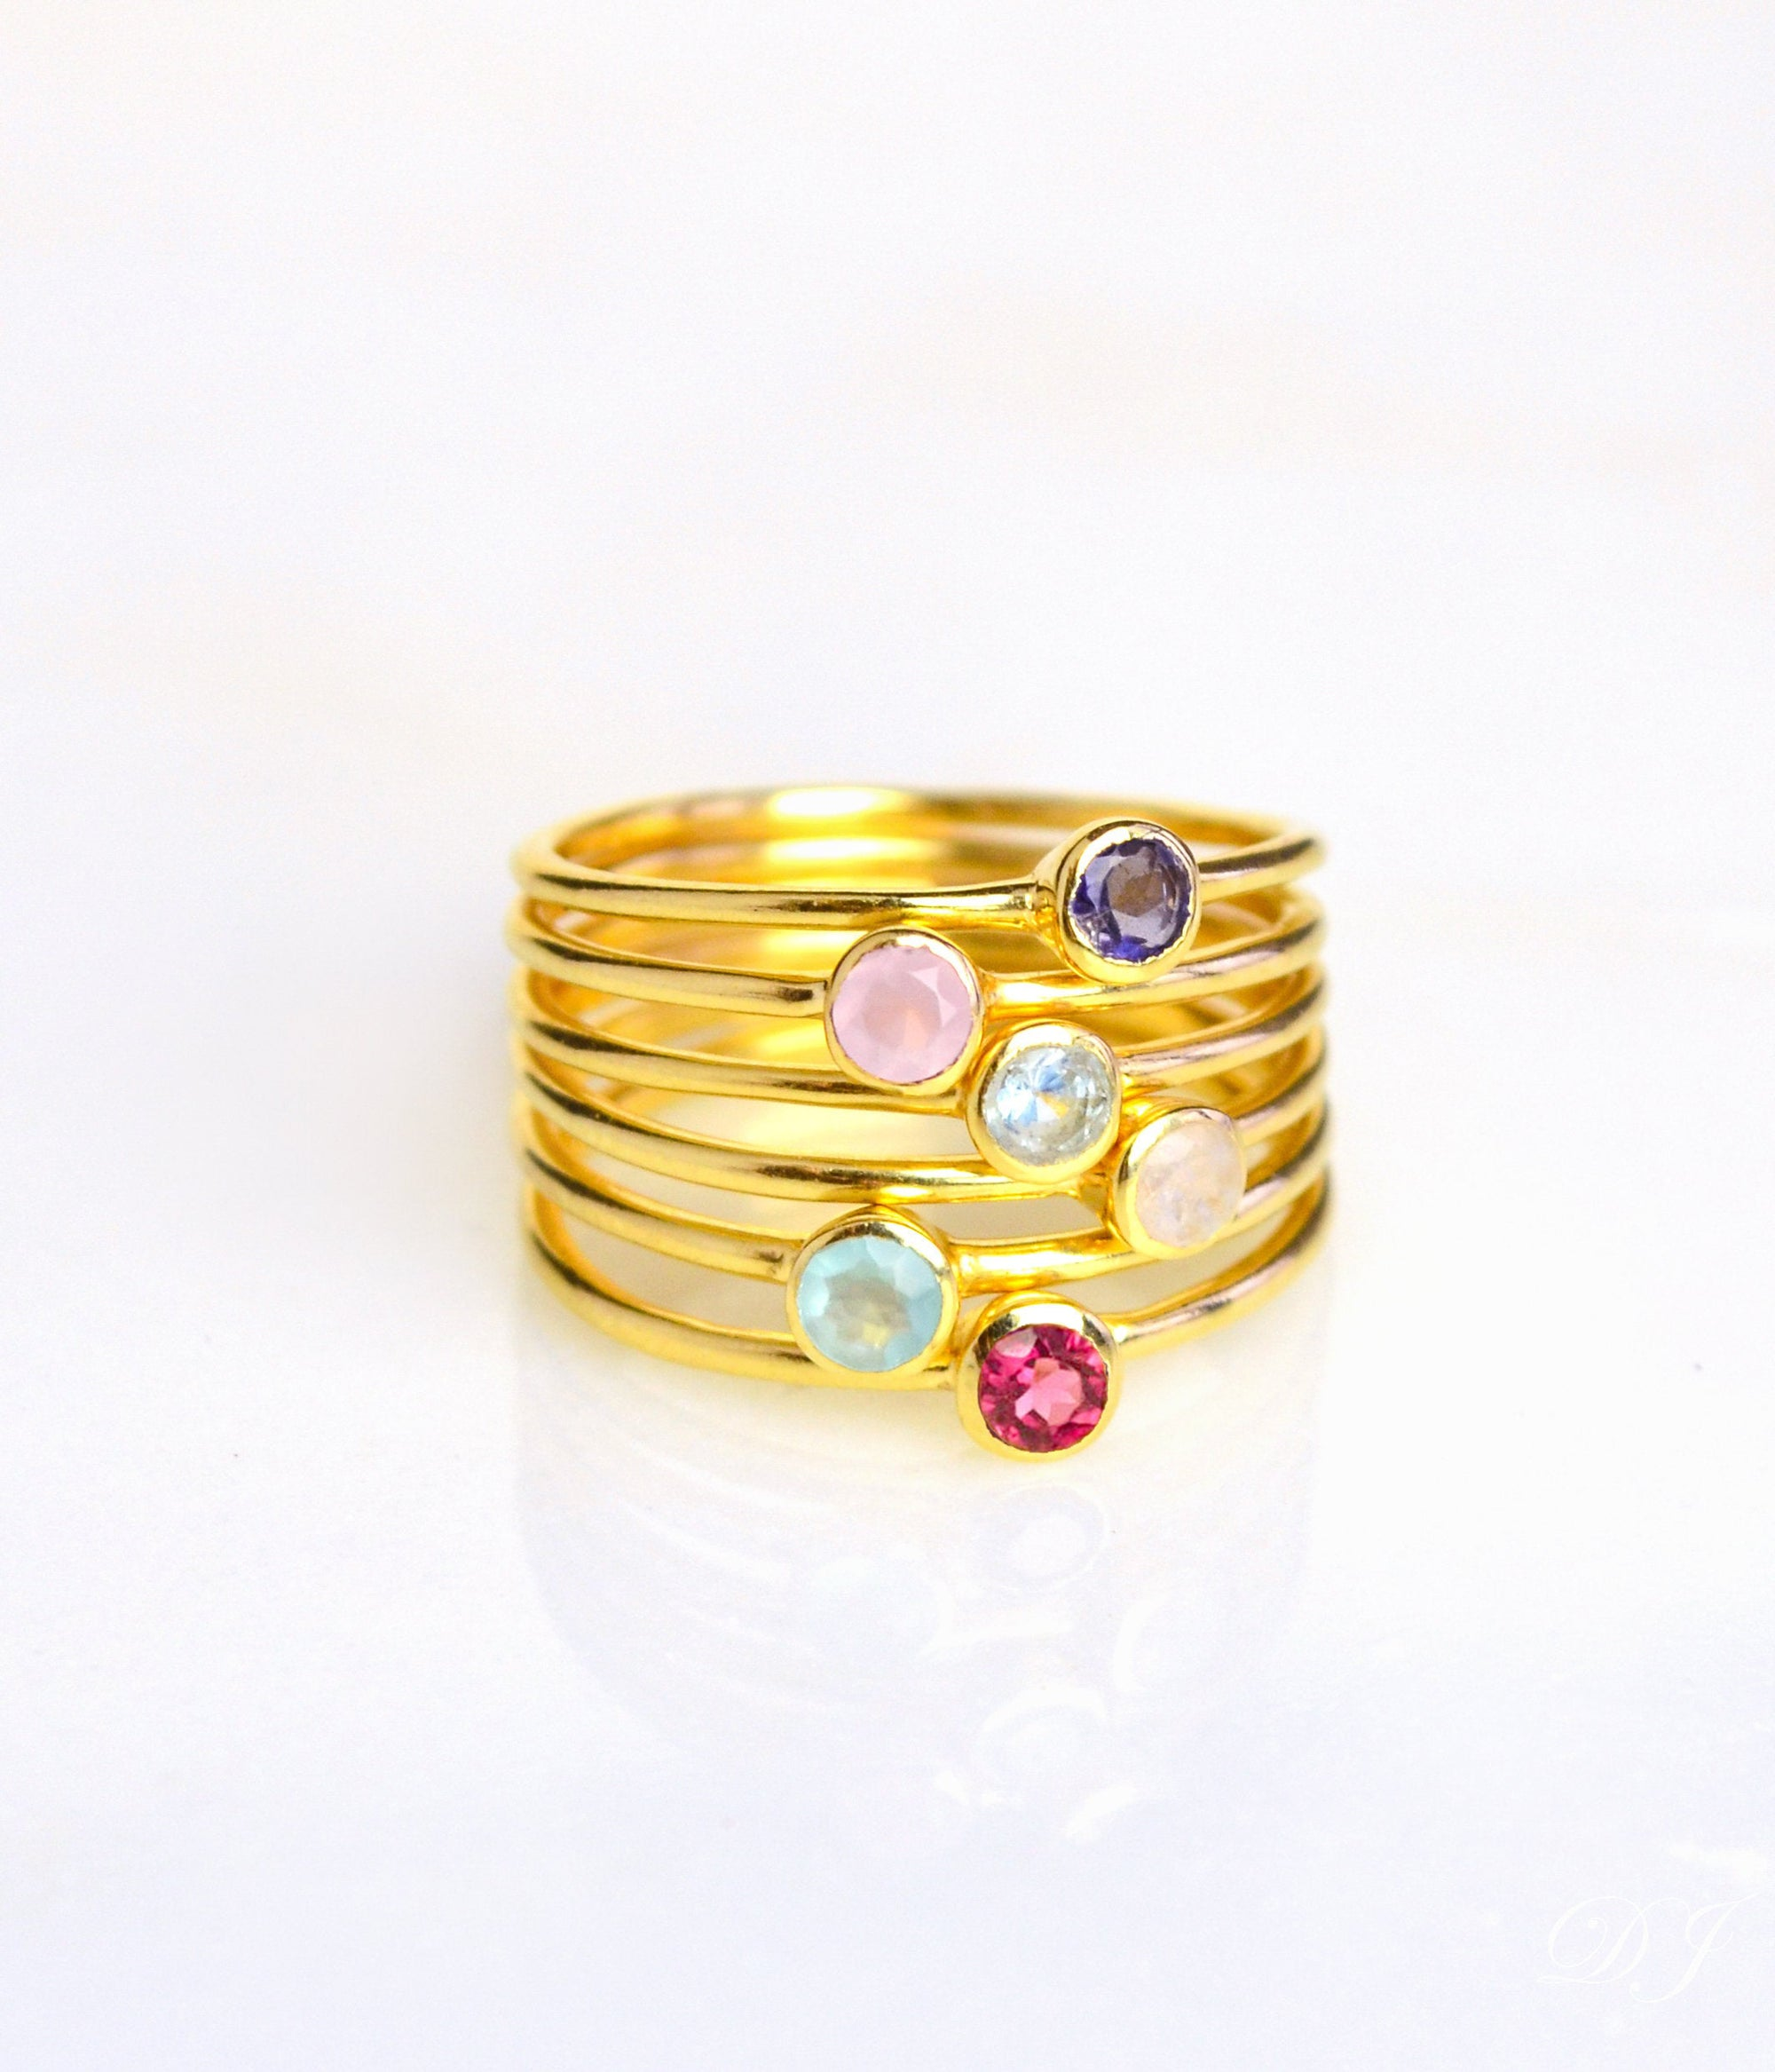 Stackable Tiny Stone Rings. Dainty Ring Gold Ring for Her Birthstone Ring Mothers Day Gifts Birthstone Stacking Ring Mom Rings